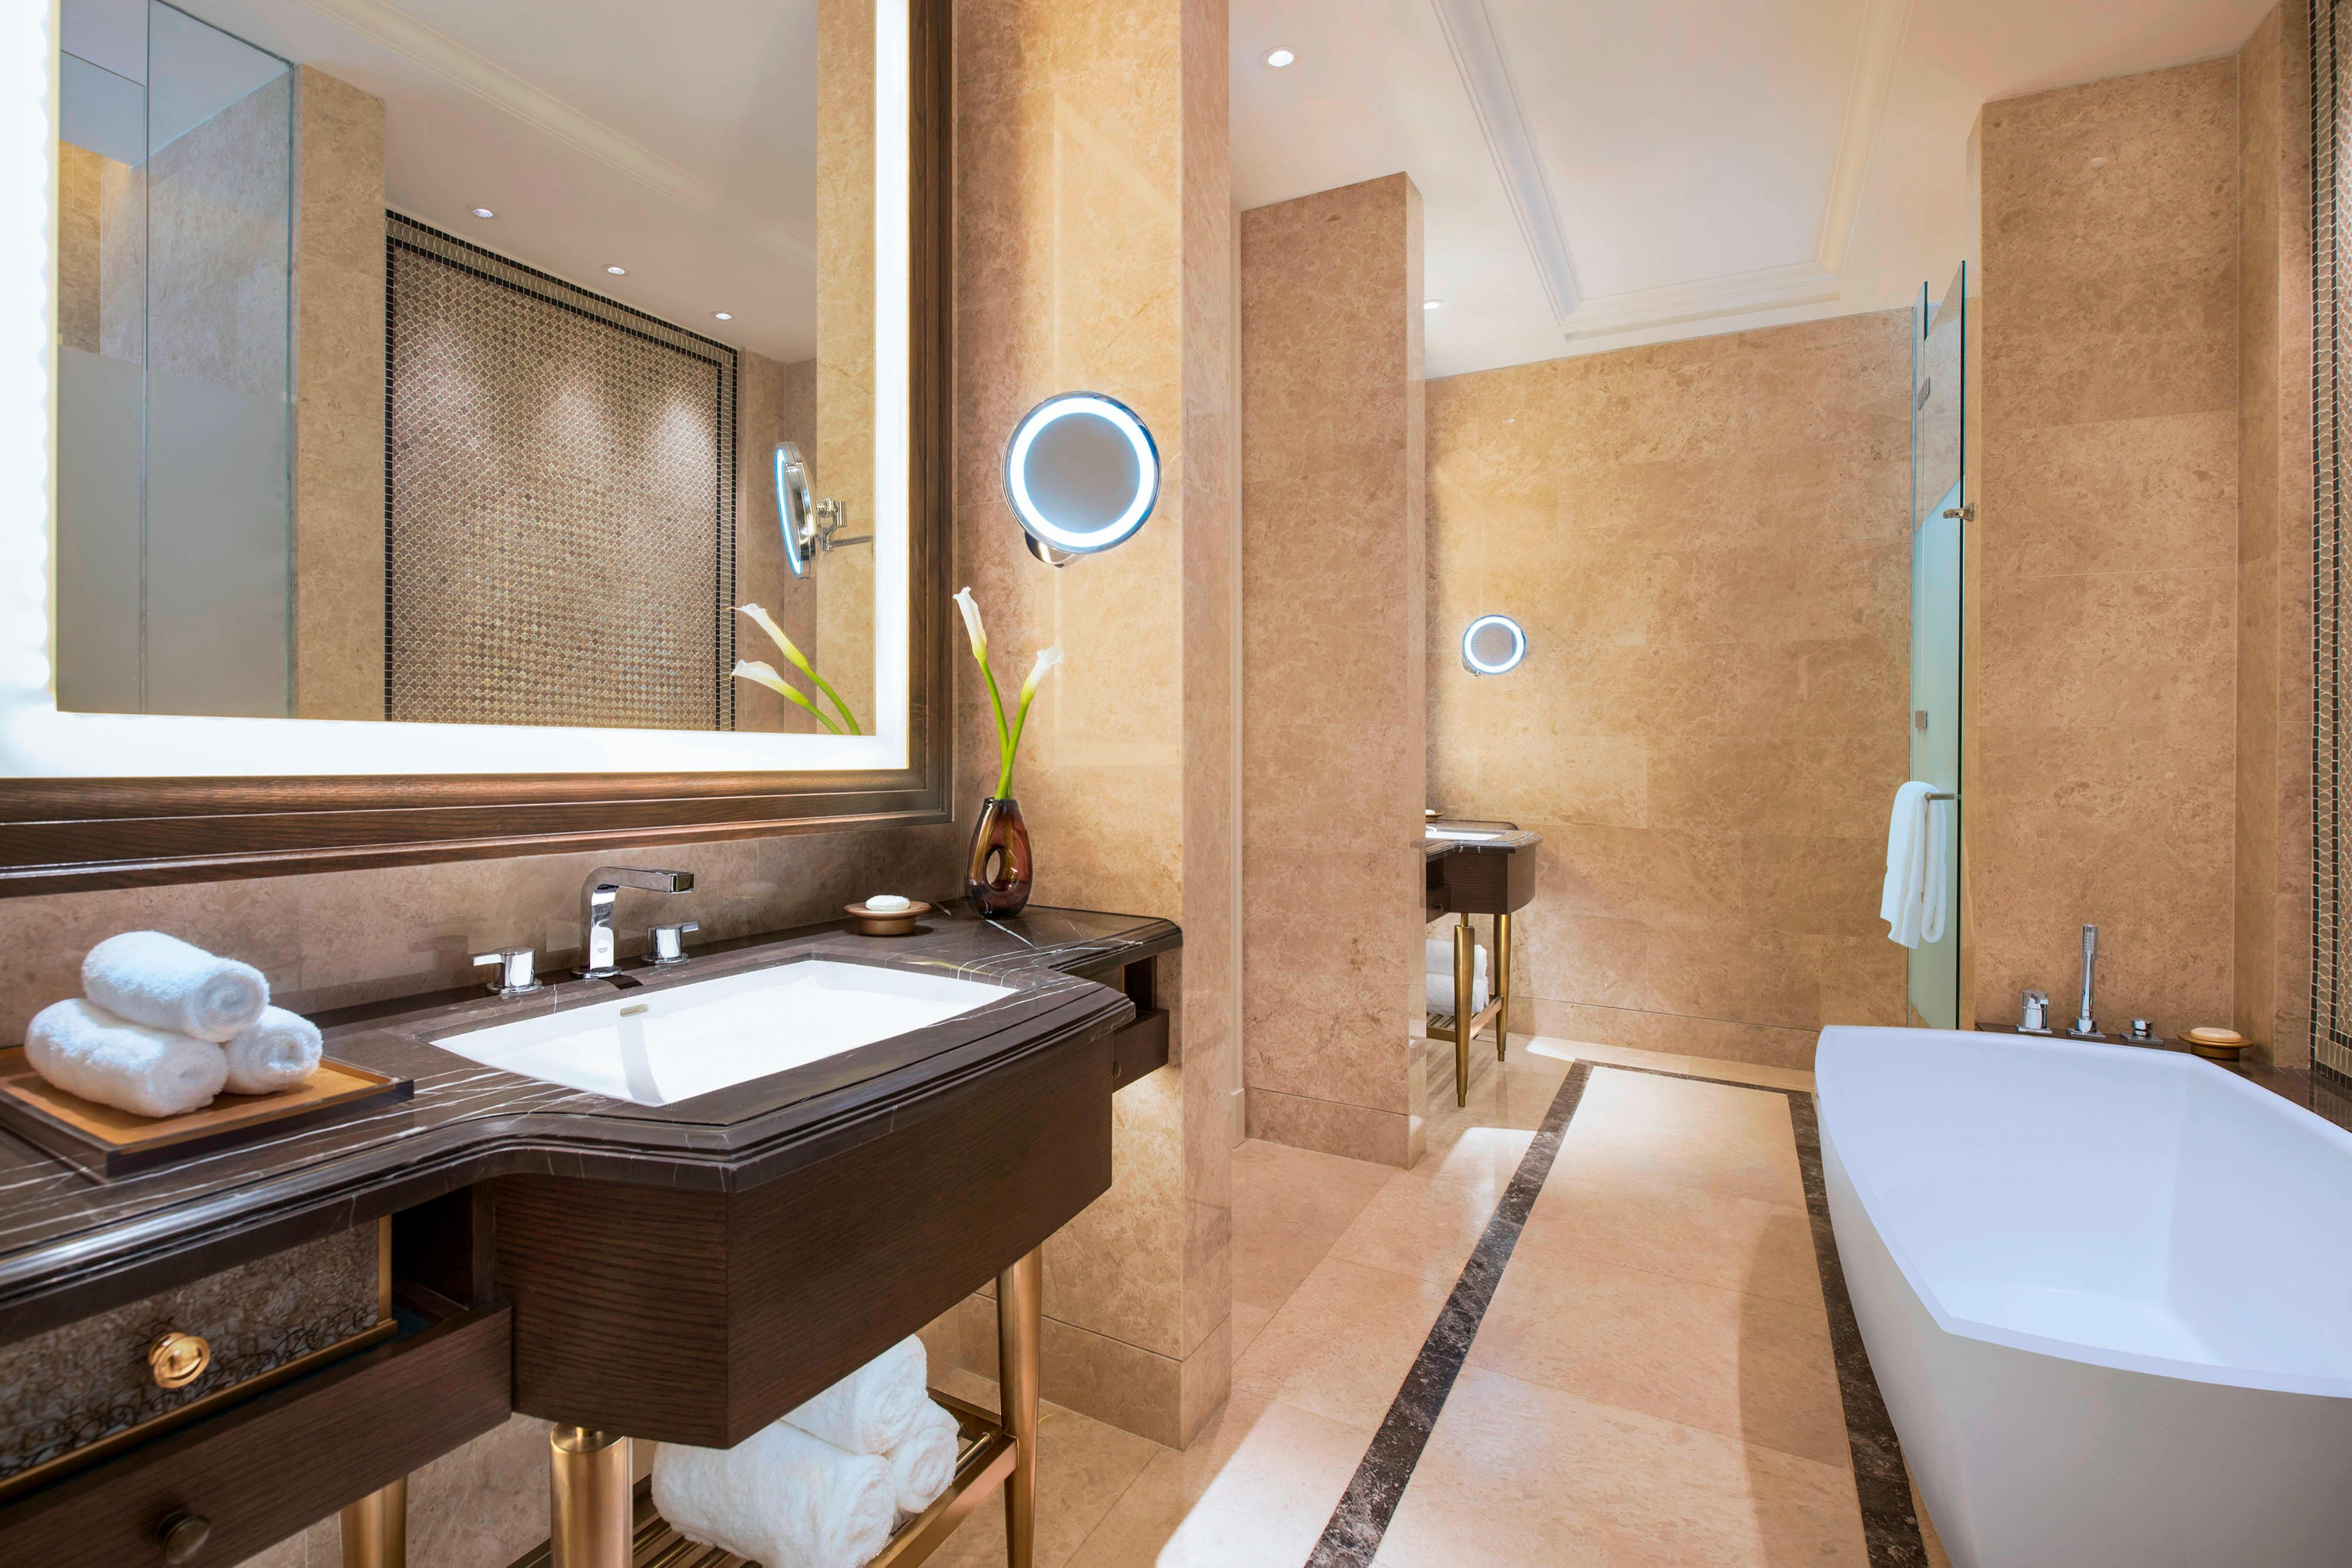 St Regis Pool Suite - Bathroom